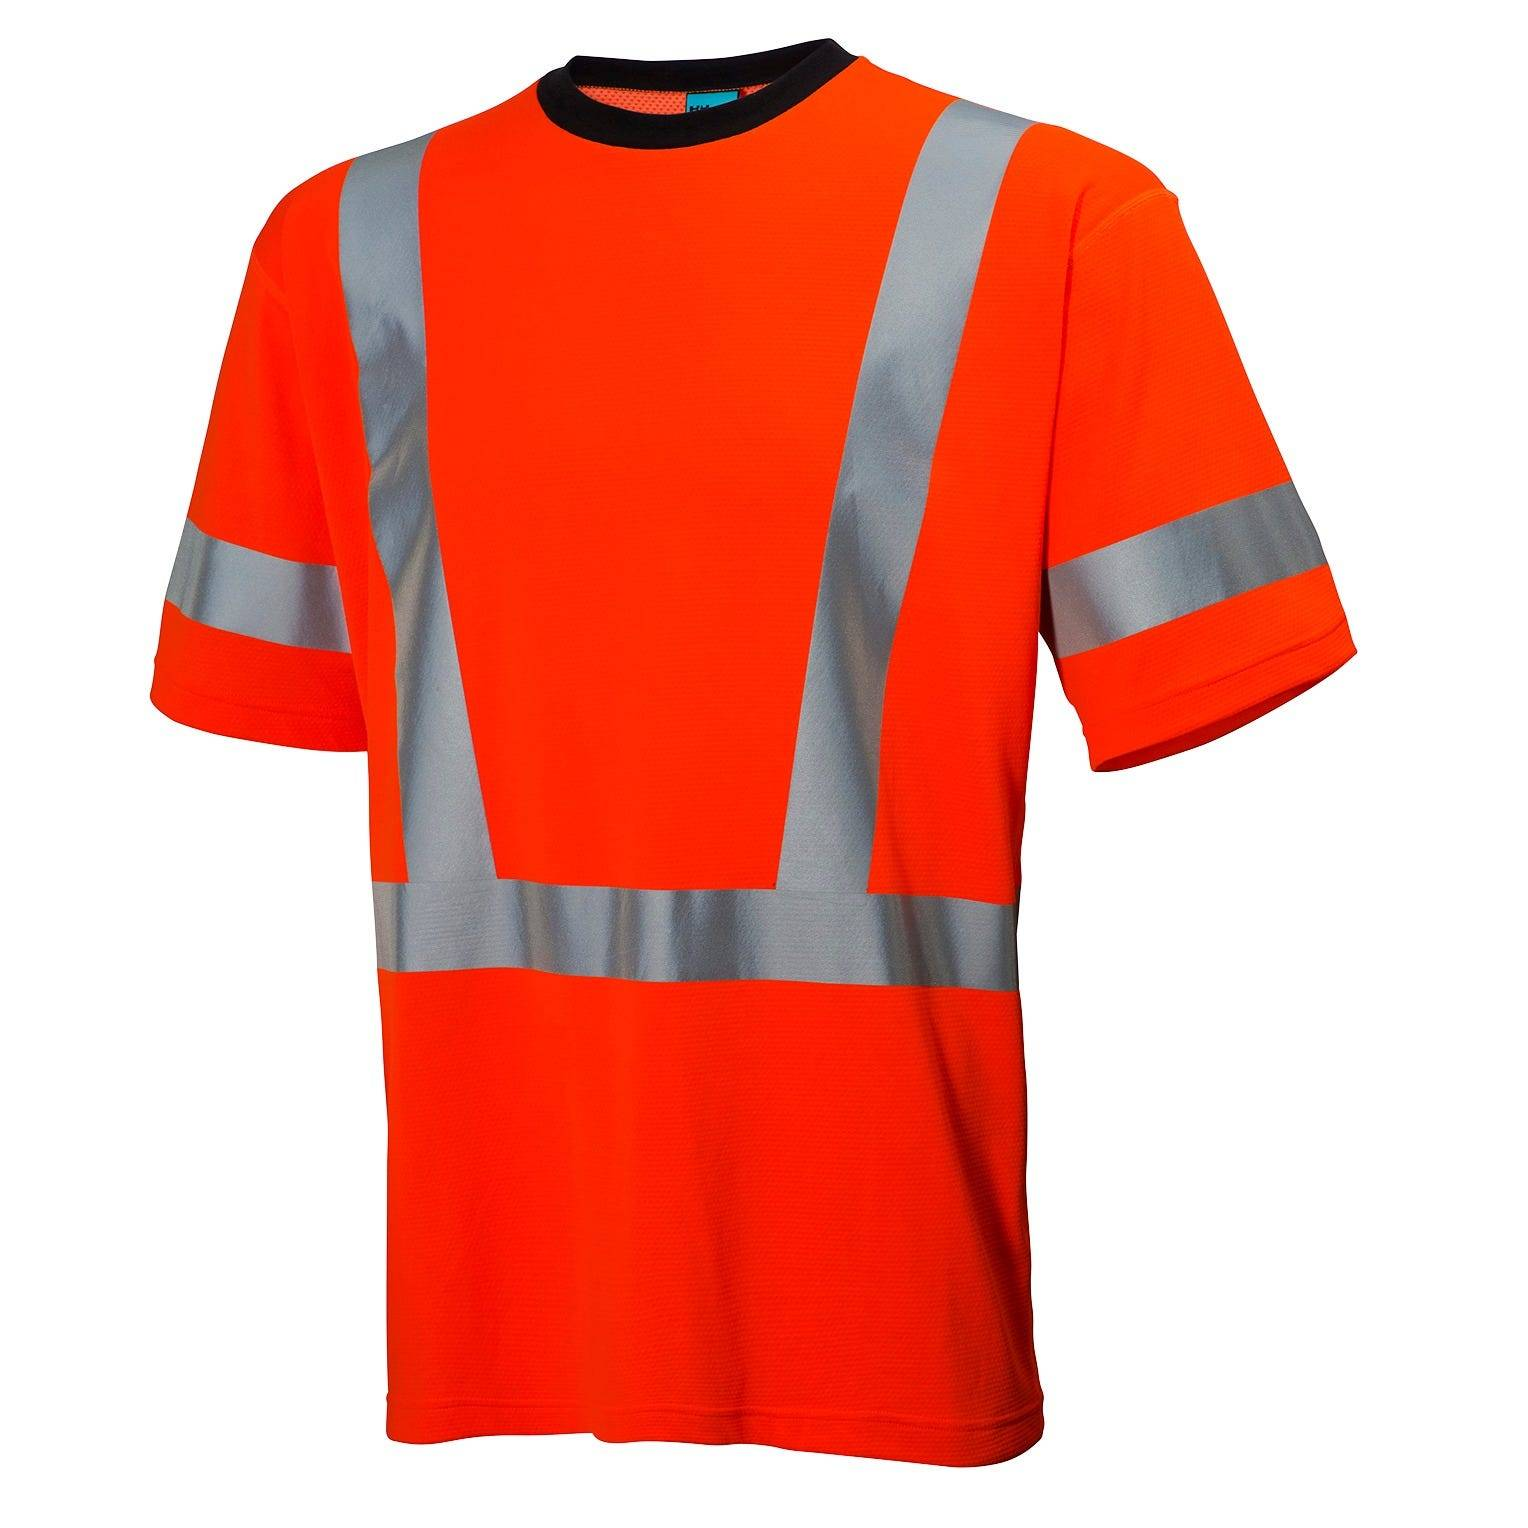 HH Workwear Esbjerg T-shirt XL Orange